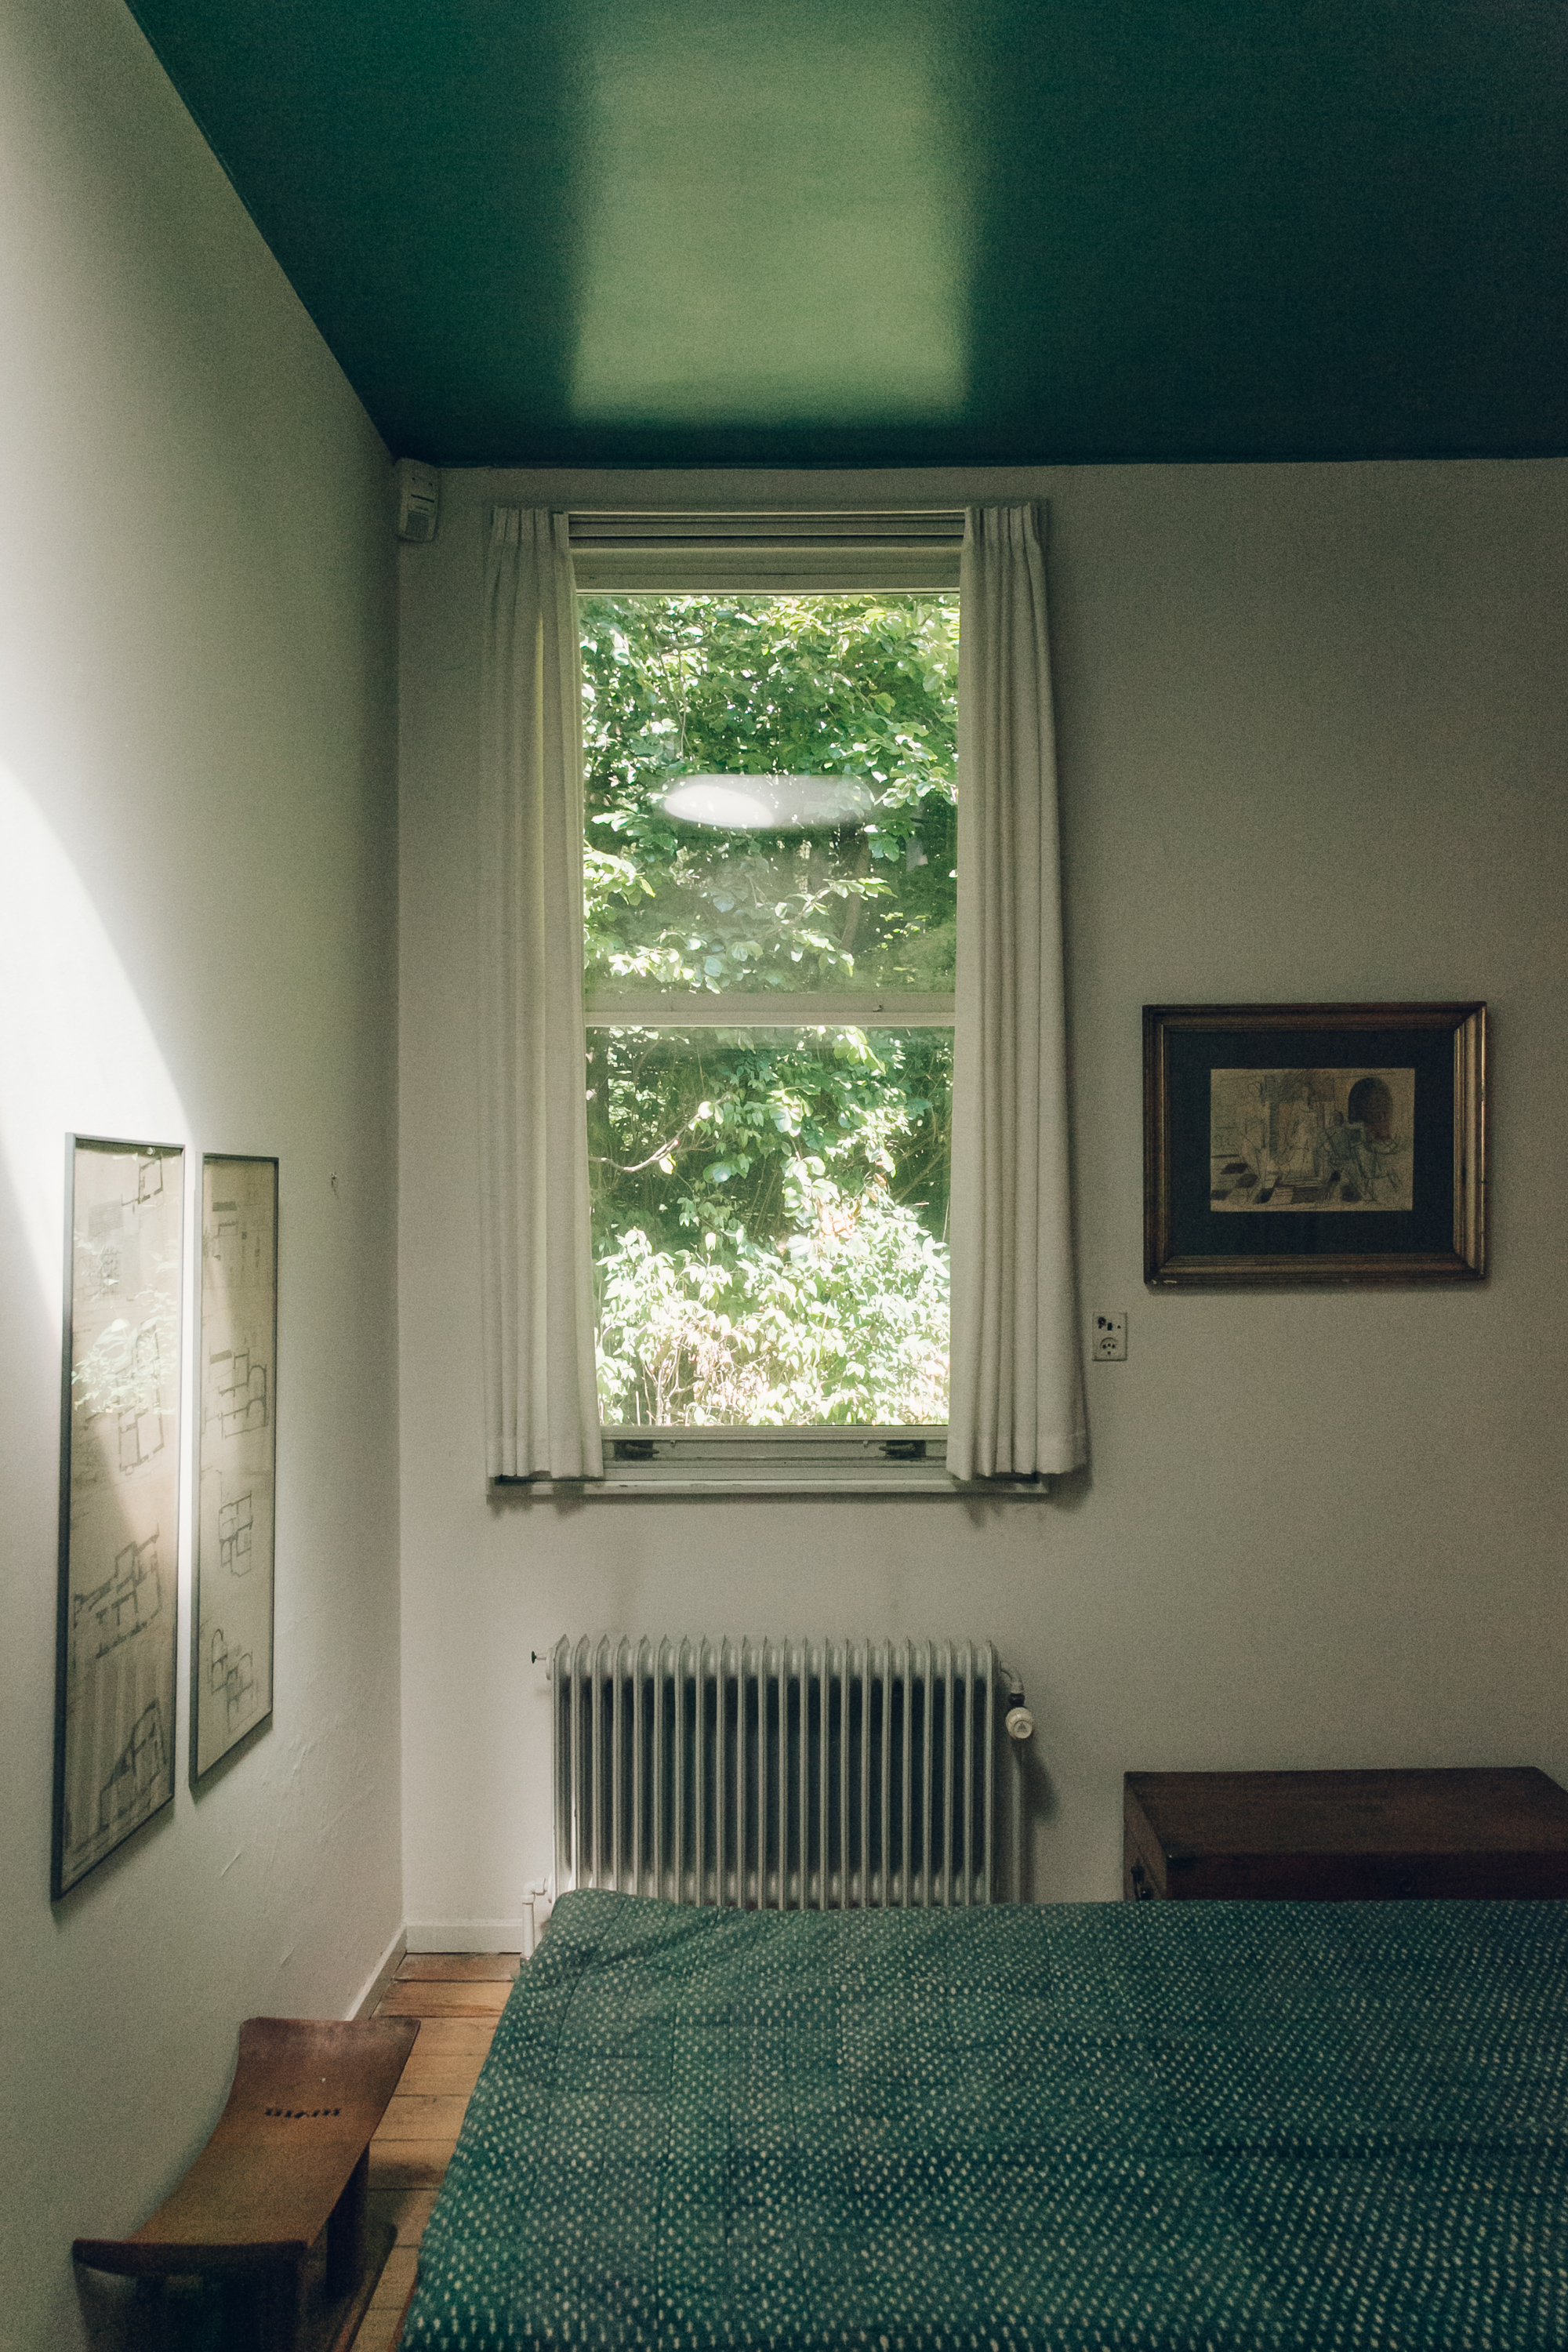 Small Bedroom at Finn Juhl's House Copenhagen